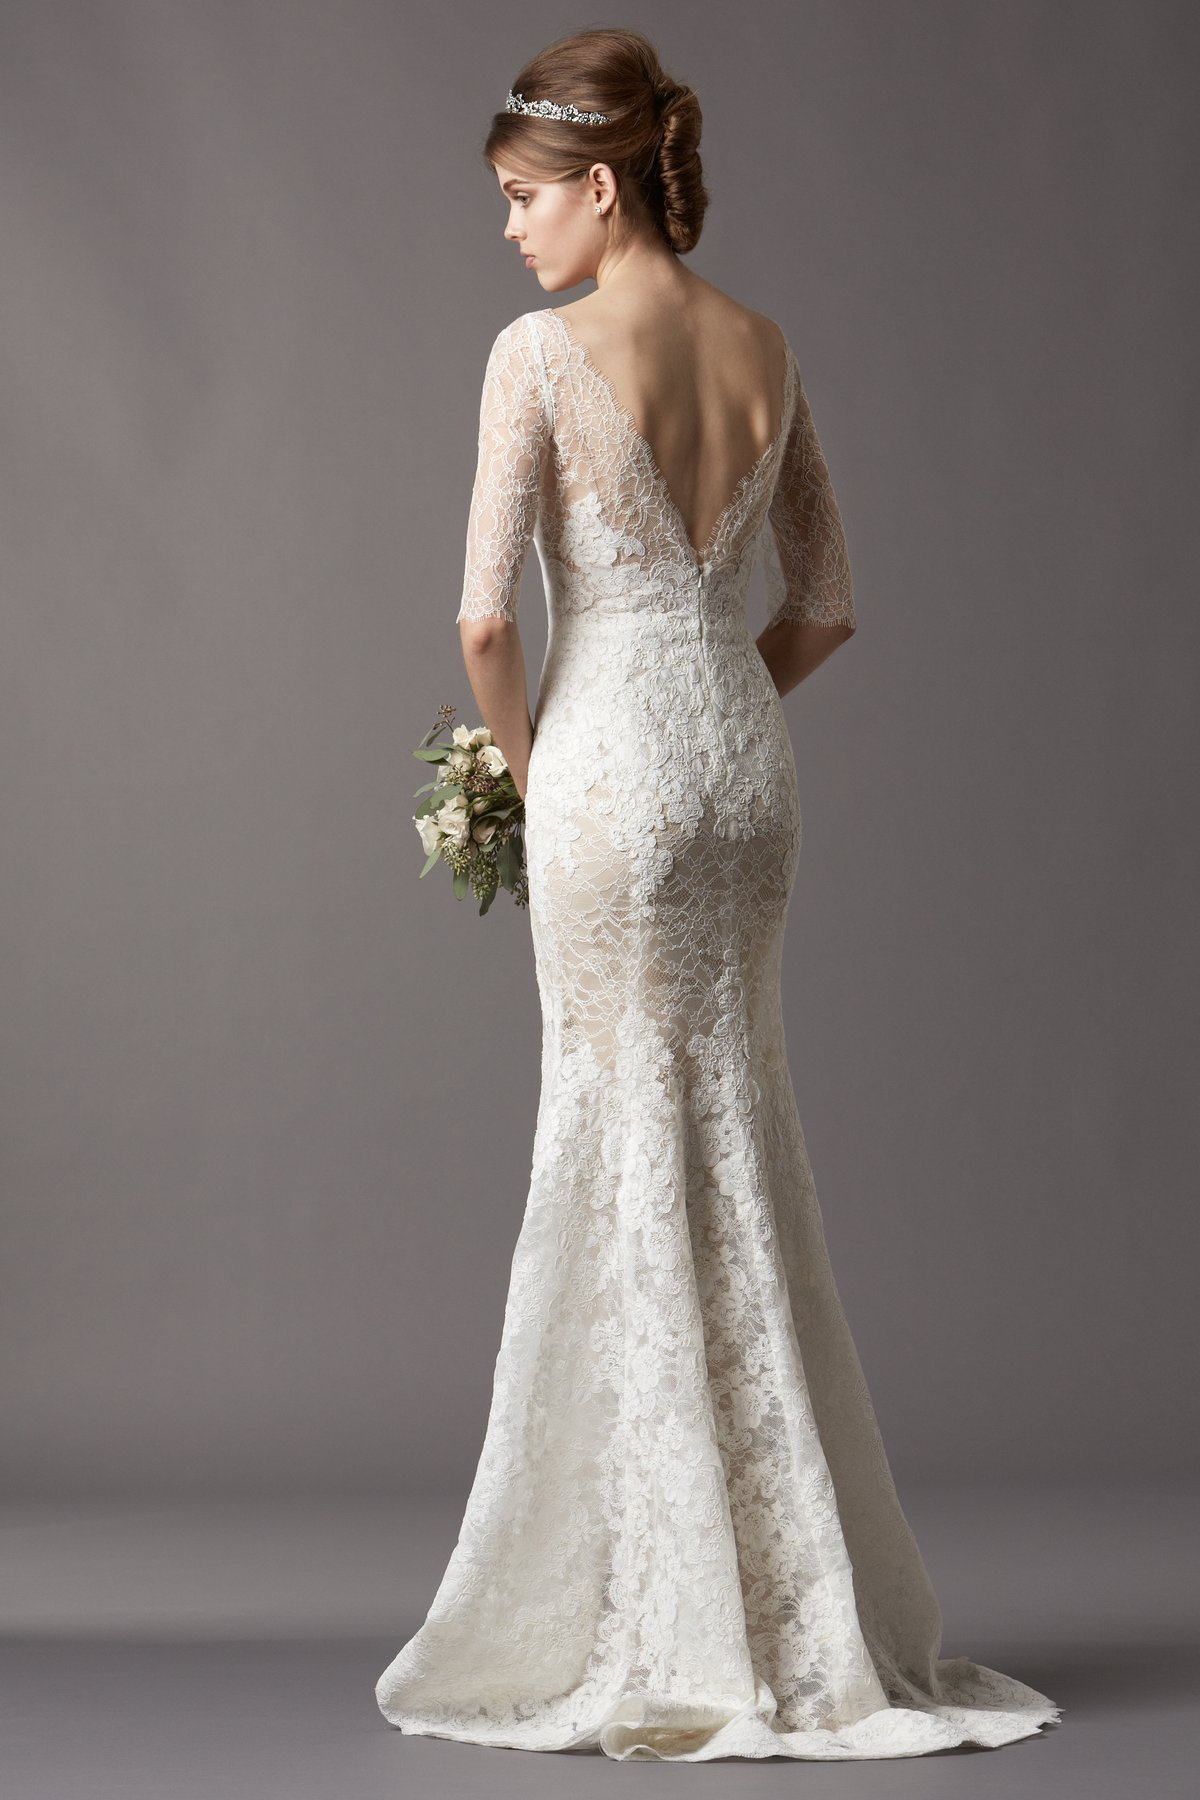 Wedding Dress Images Lace : Lace wedding dresses with sleeves